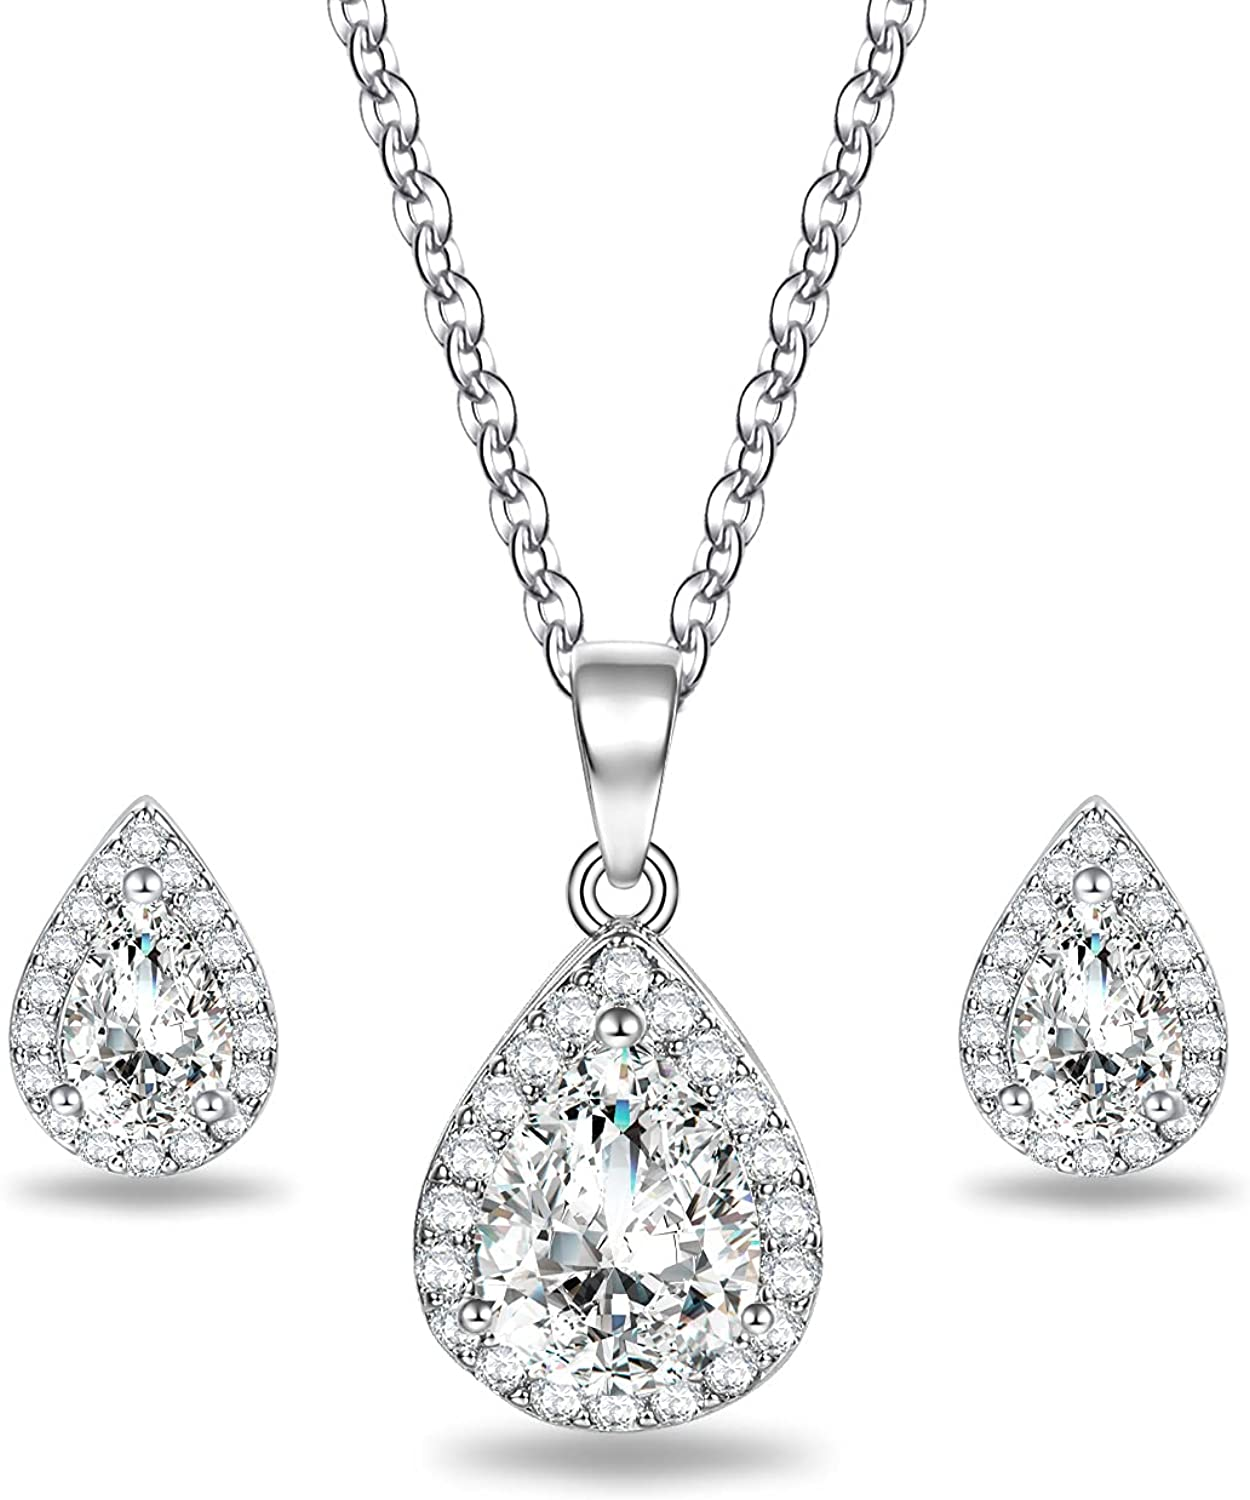 18K White Gold Plated Women Pear Shaped Cubic Zirconia Halo CZ Teardrop Pendant Necklace and Stud Earrings Jewelry Set for WeddingBridal Bridesmaids